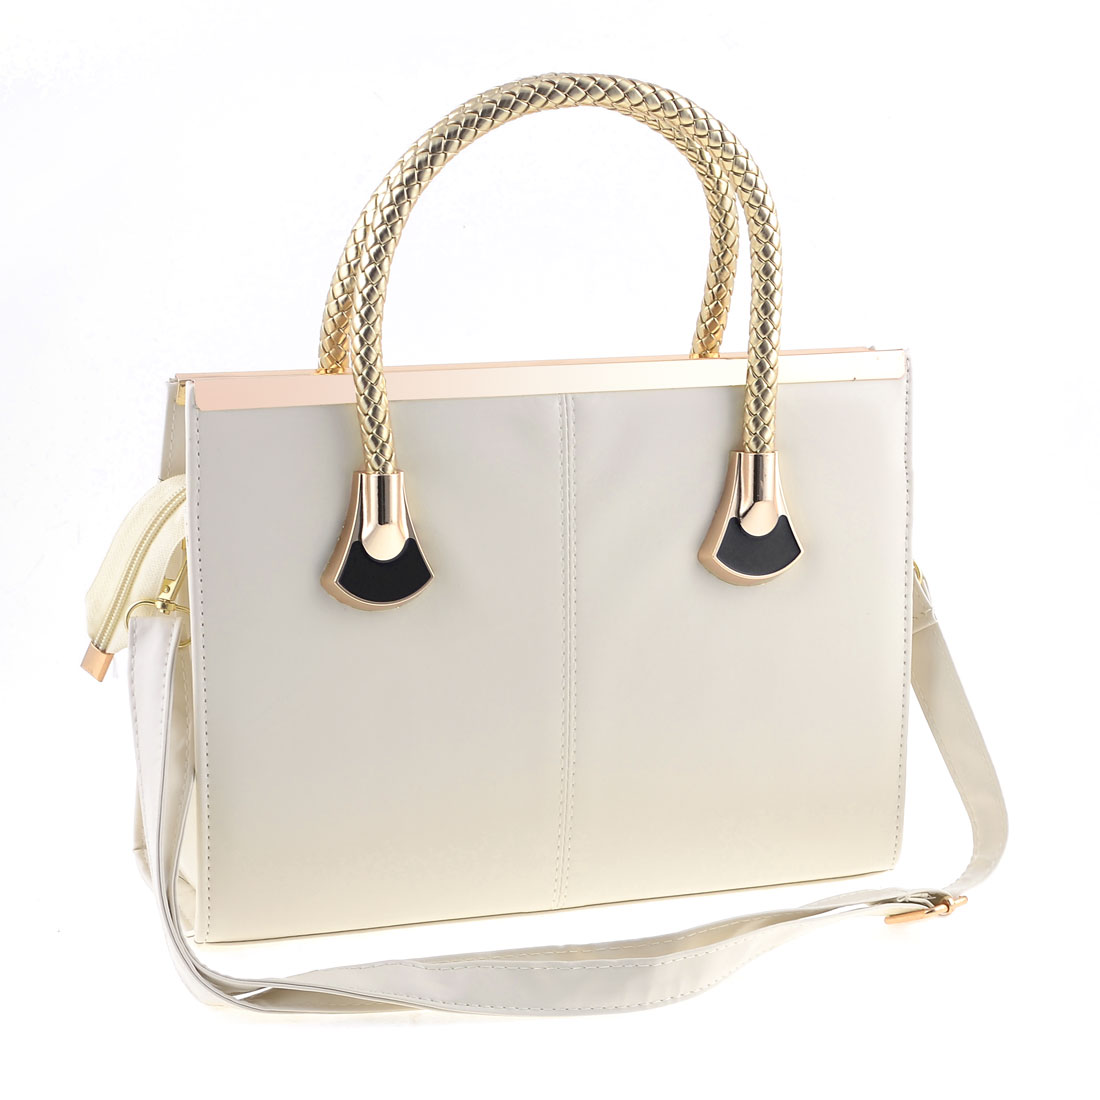 White Faux Leather Zip Up Closure Retro Style Tote Bag Handbag for Woman